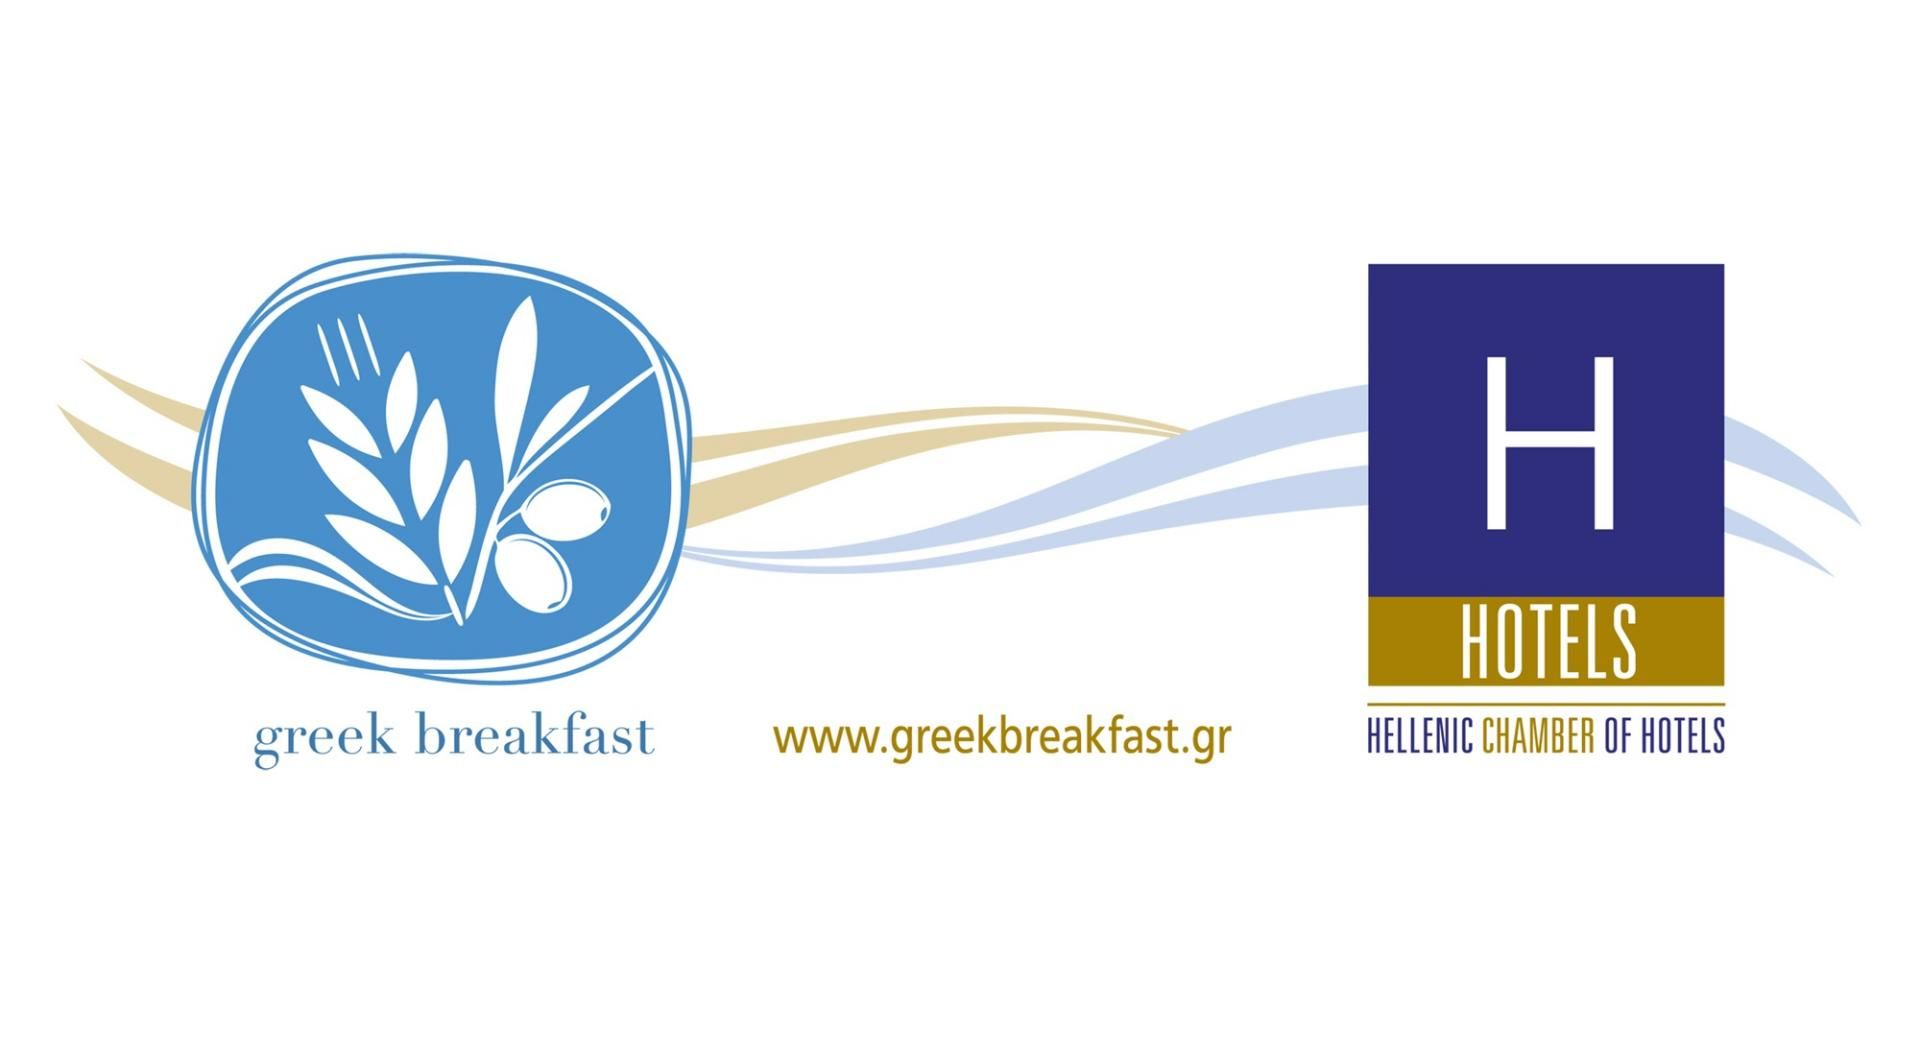 greek-breakfast-logo-huge